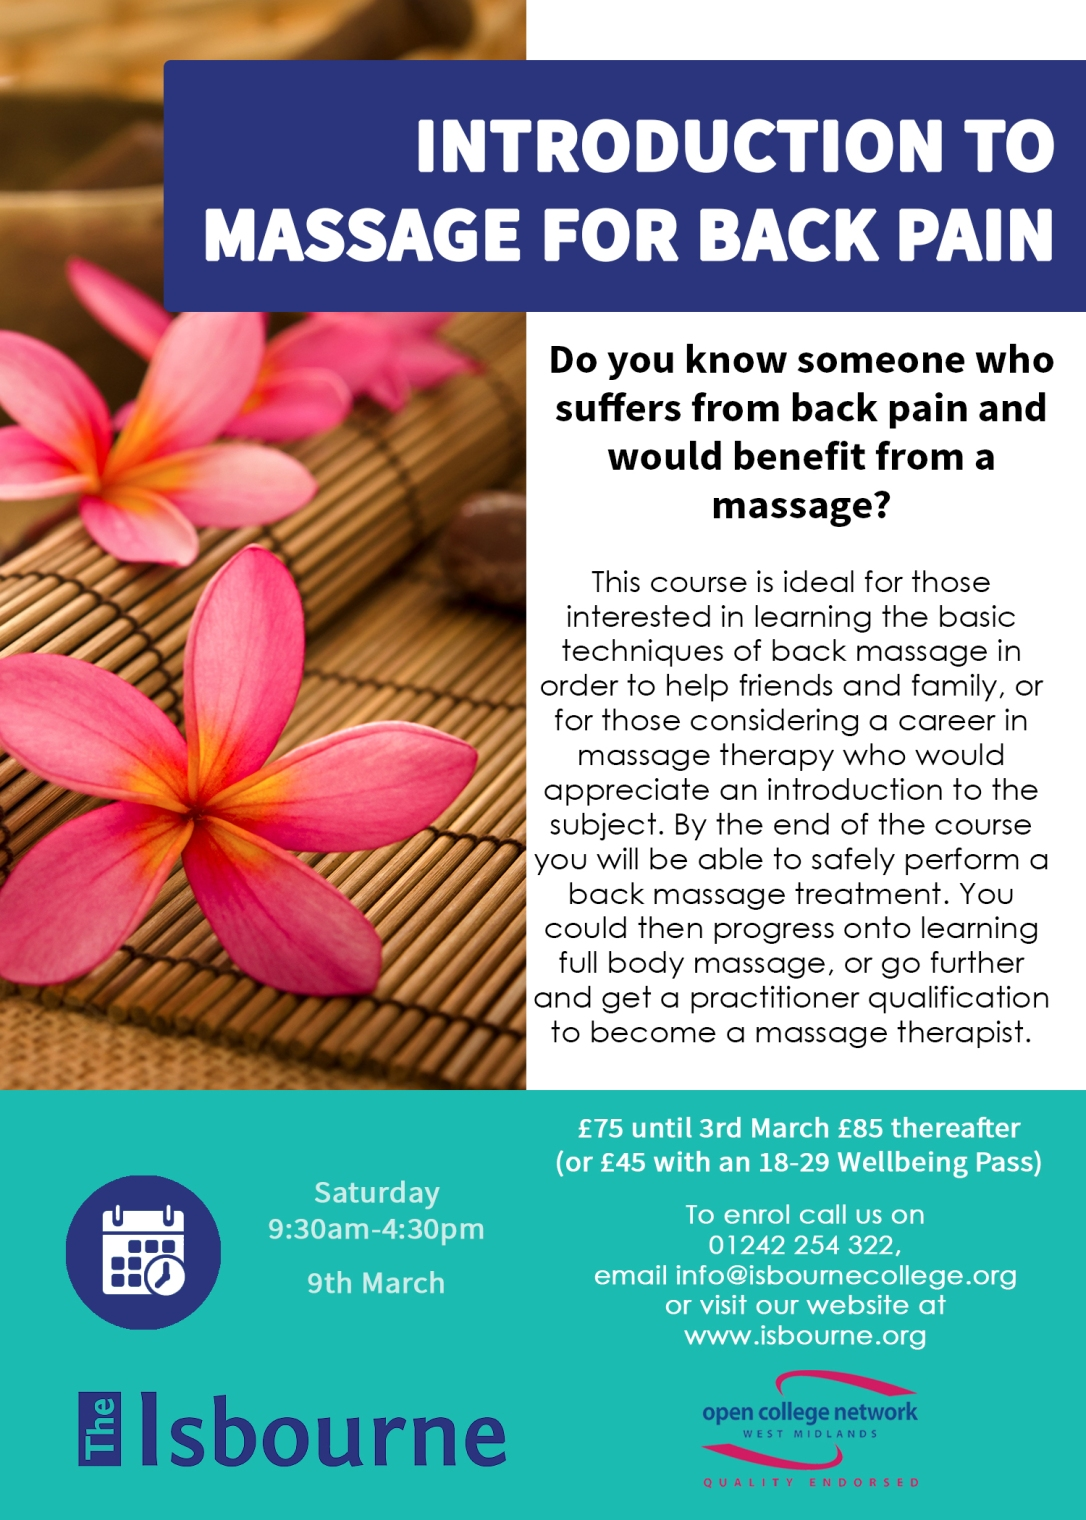 intro to massage poster.jpg